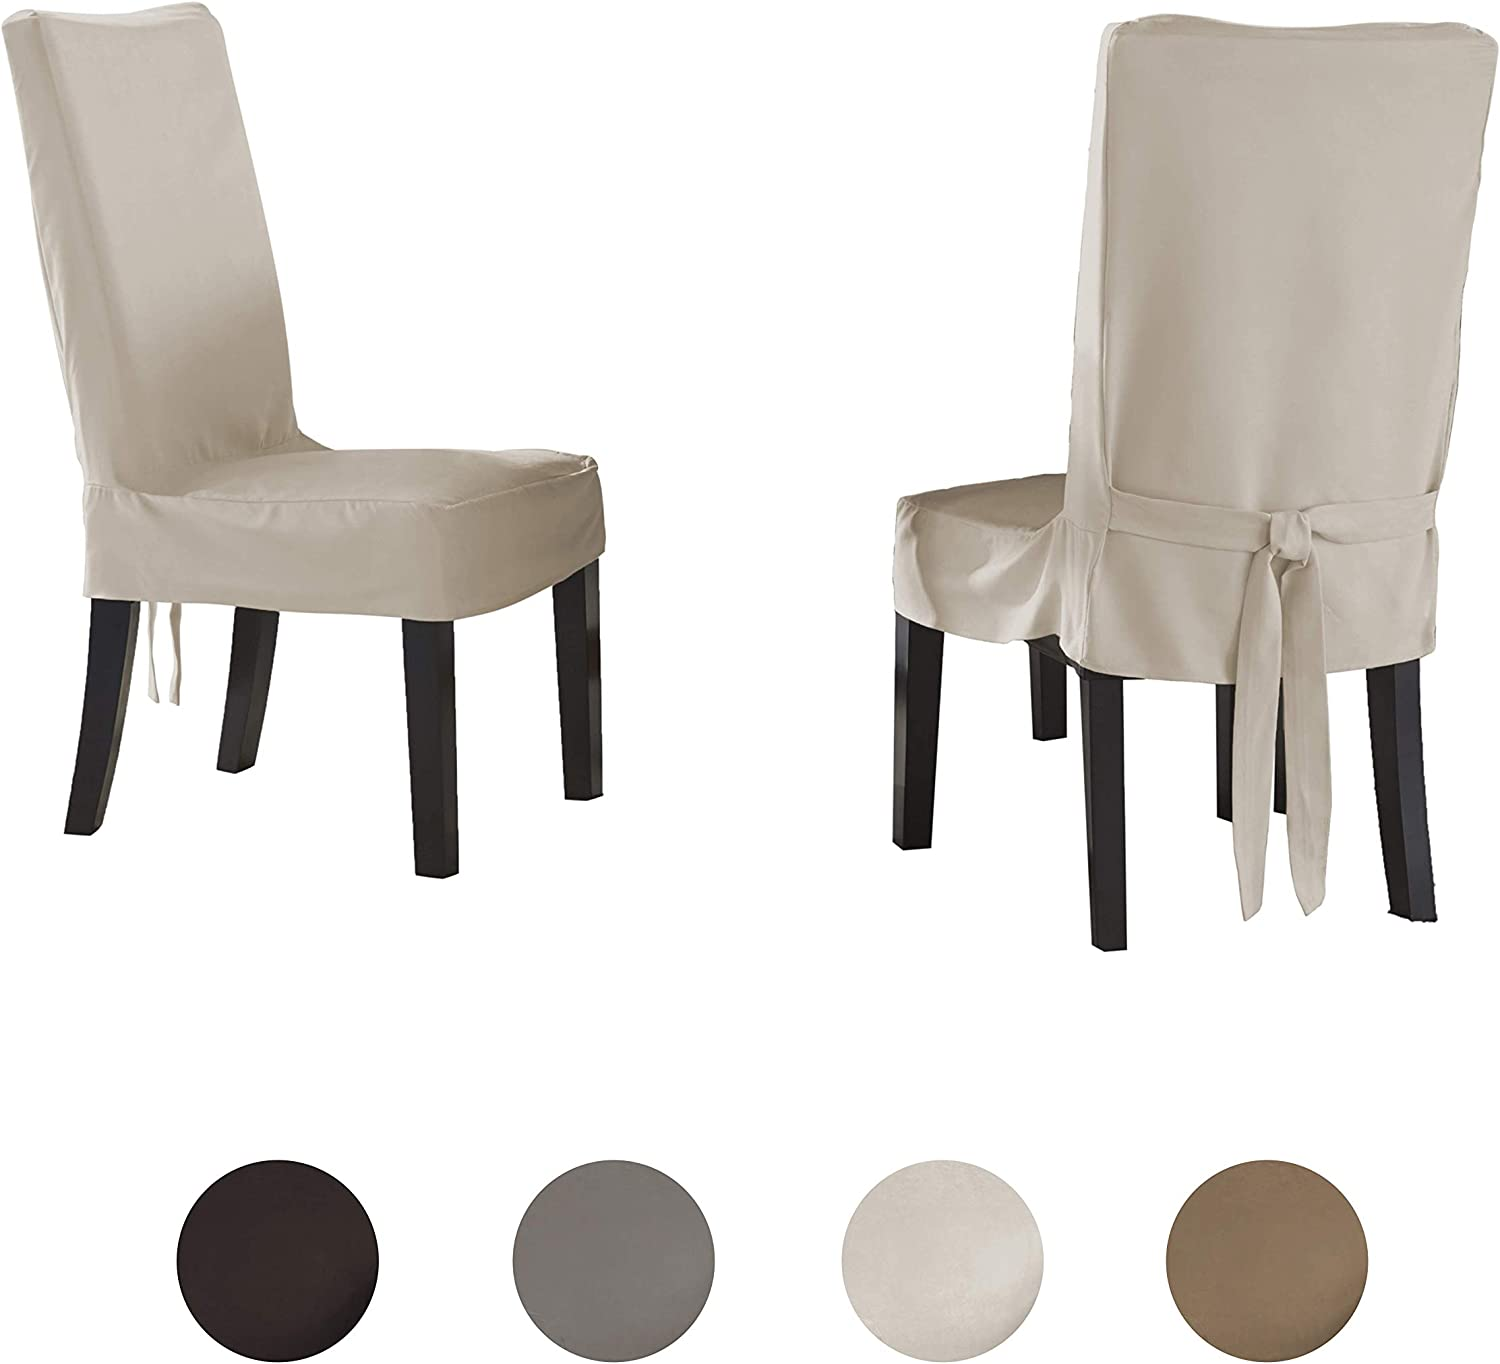 Amazon Com Serta Relaxed Fit Smooth Suede Furniture Slipcover For Dining Room Chair Short Skirt Ivory Home Kitchen